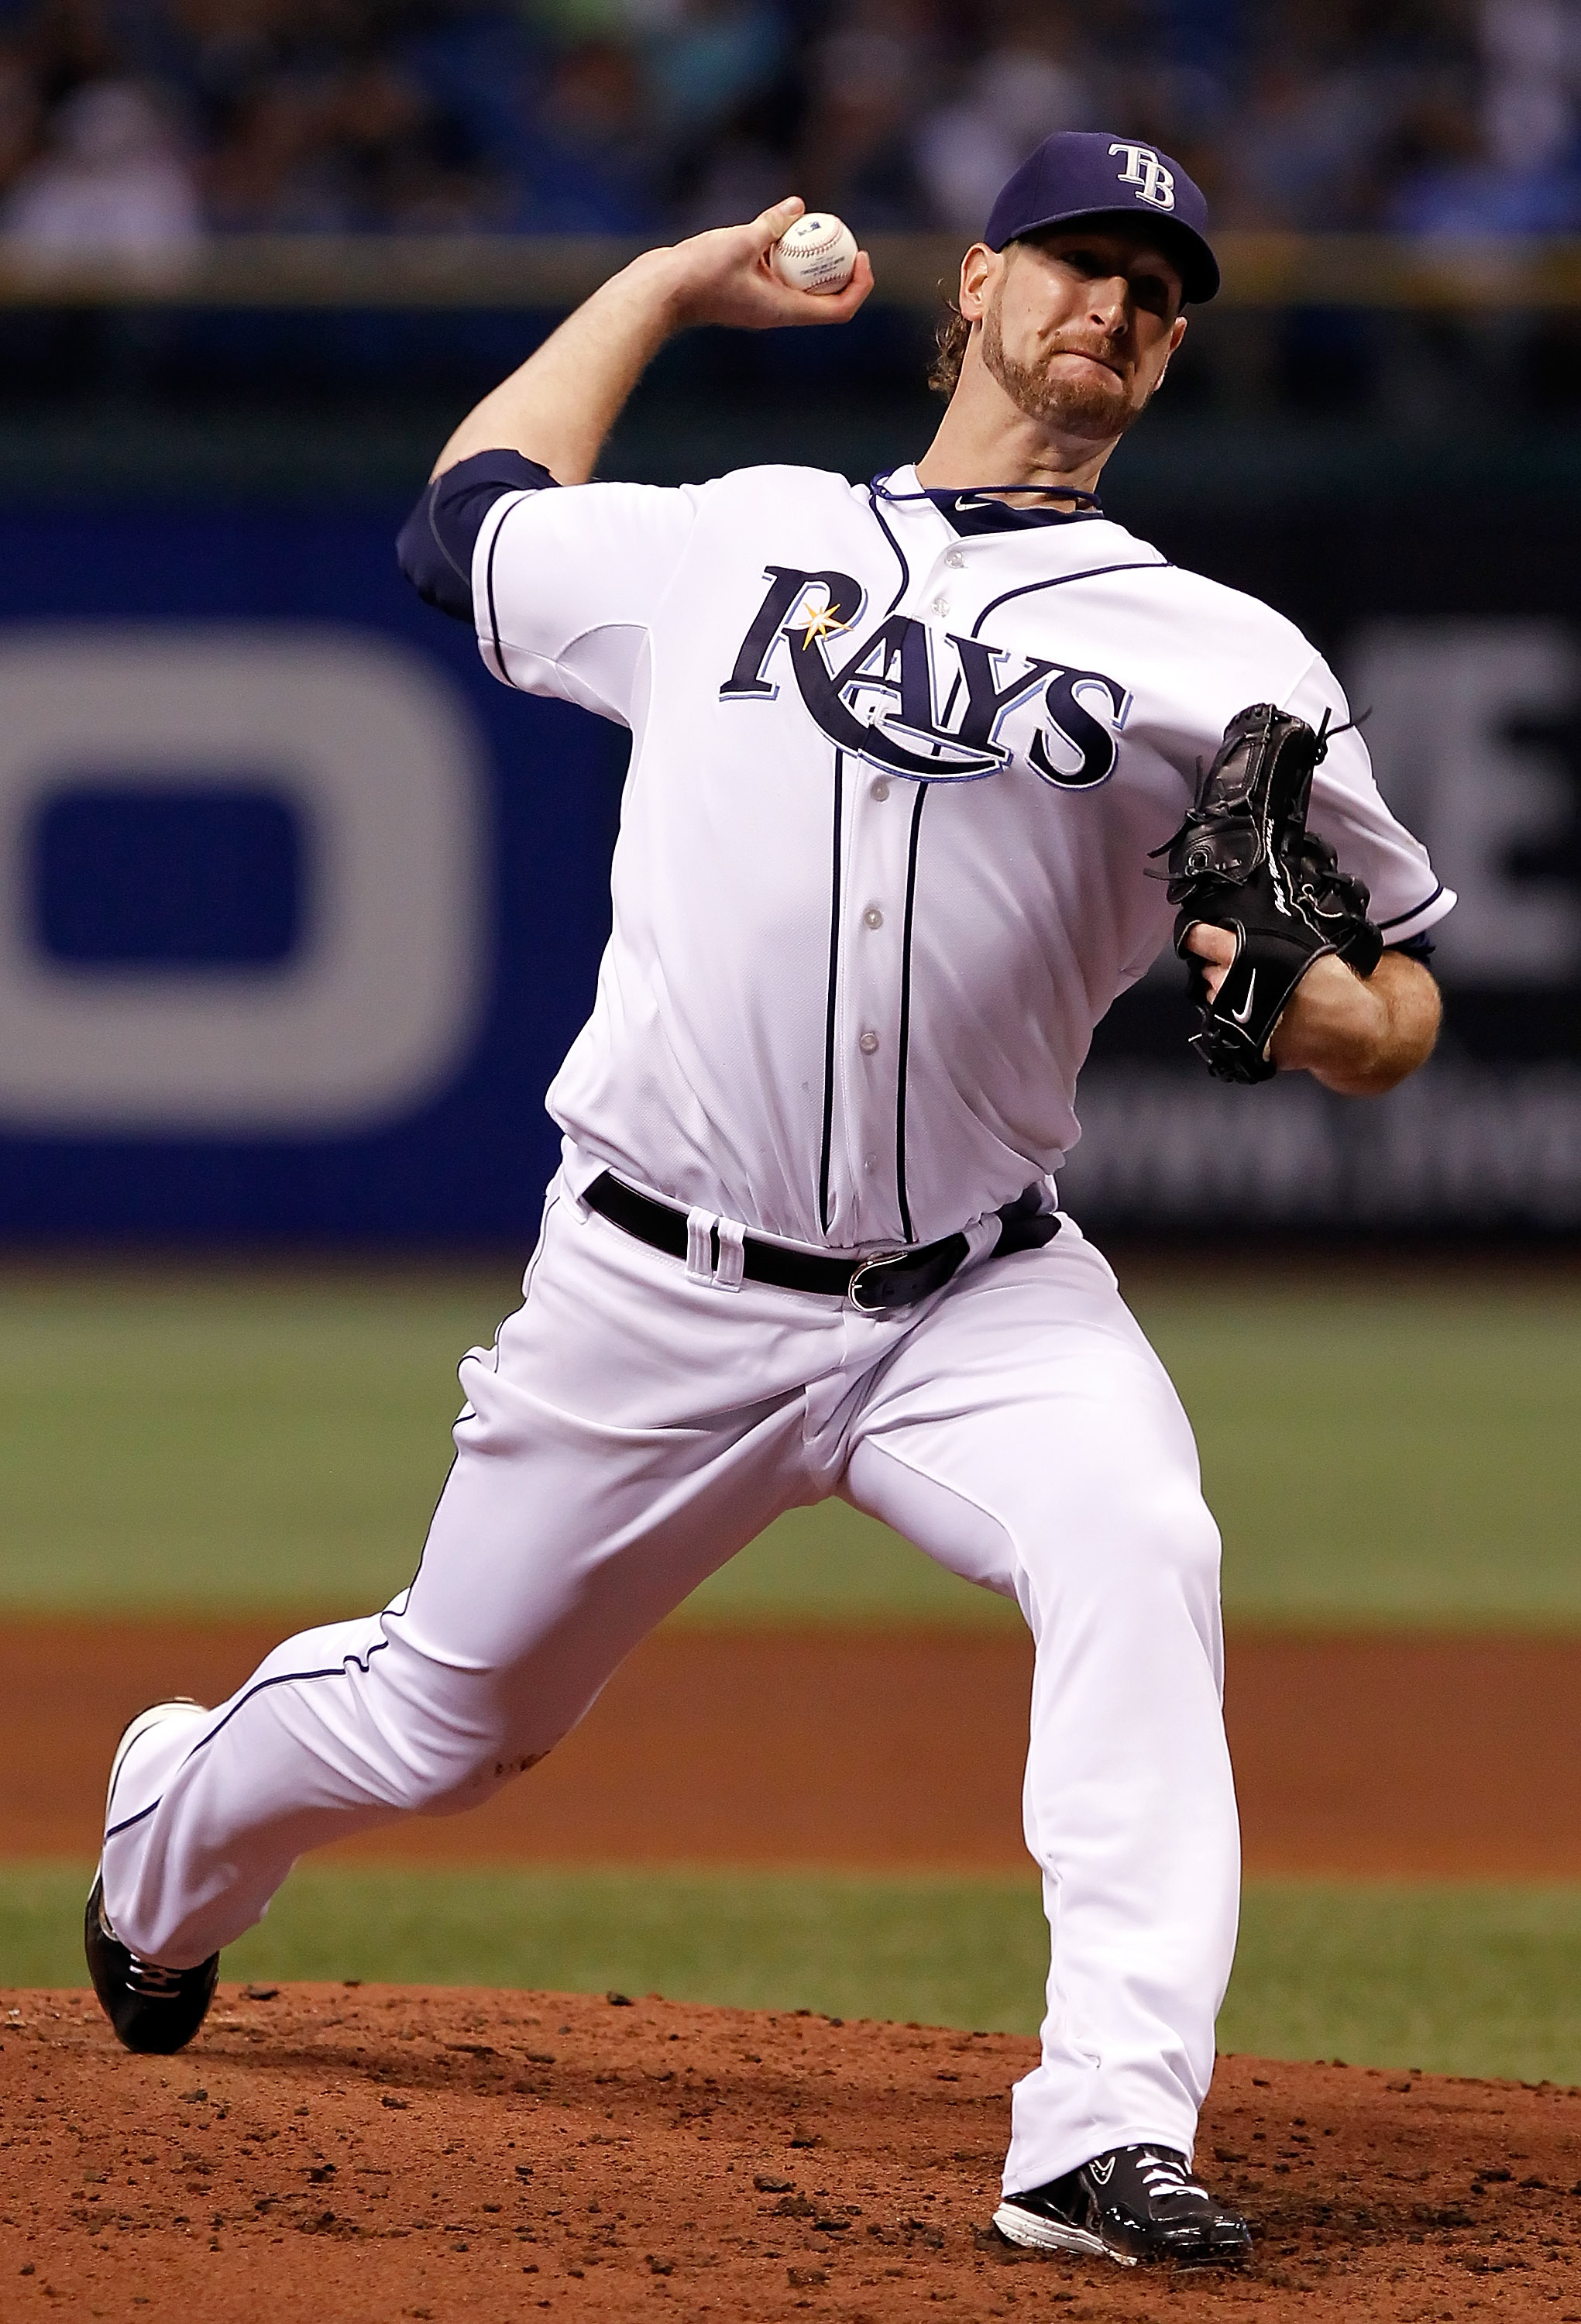 ST. PETERSBURG - SEPTEMBER 24:  Pitcher Jeff Niemann #34 of the Tampa Bay Rays pitches against the Seattle Mariners during the game at Tropicana Field on September 24, 2010 in St. Petersburg, Florida.  (Photo by J. Meric/Getty Images)